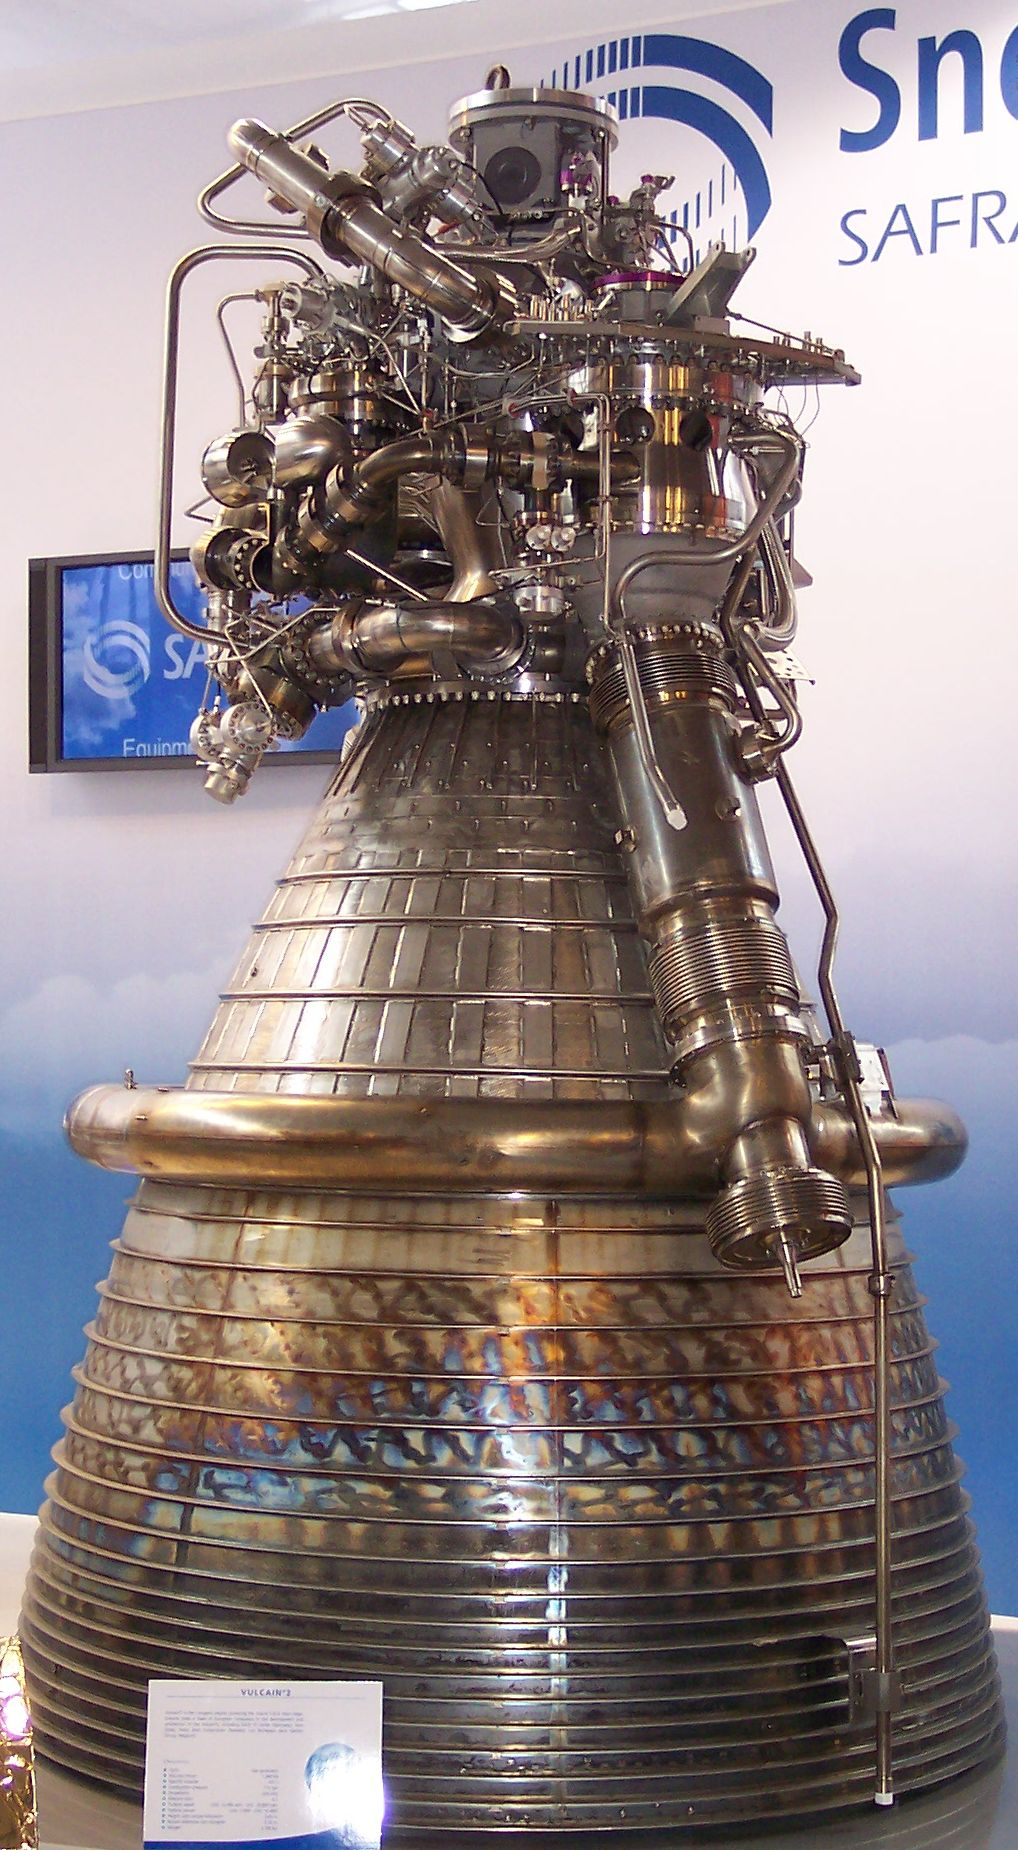 https://upload.wikimedia.org/wikipedia/commons/5/54/SNECMA_Vulcain_II.jpg